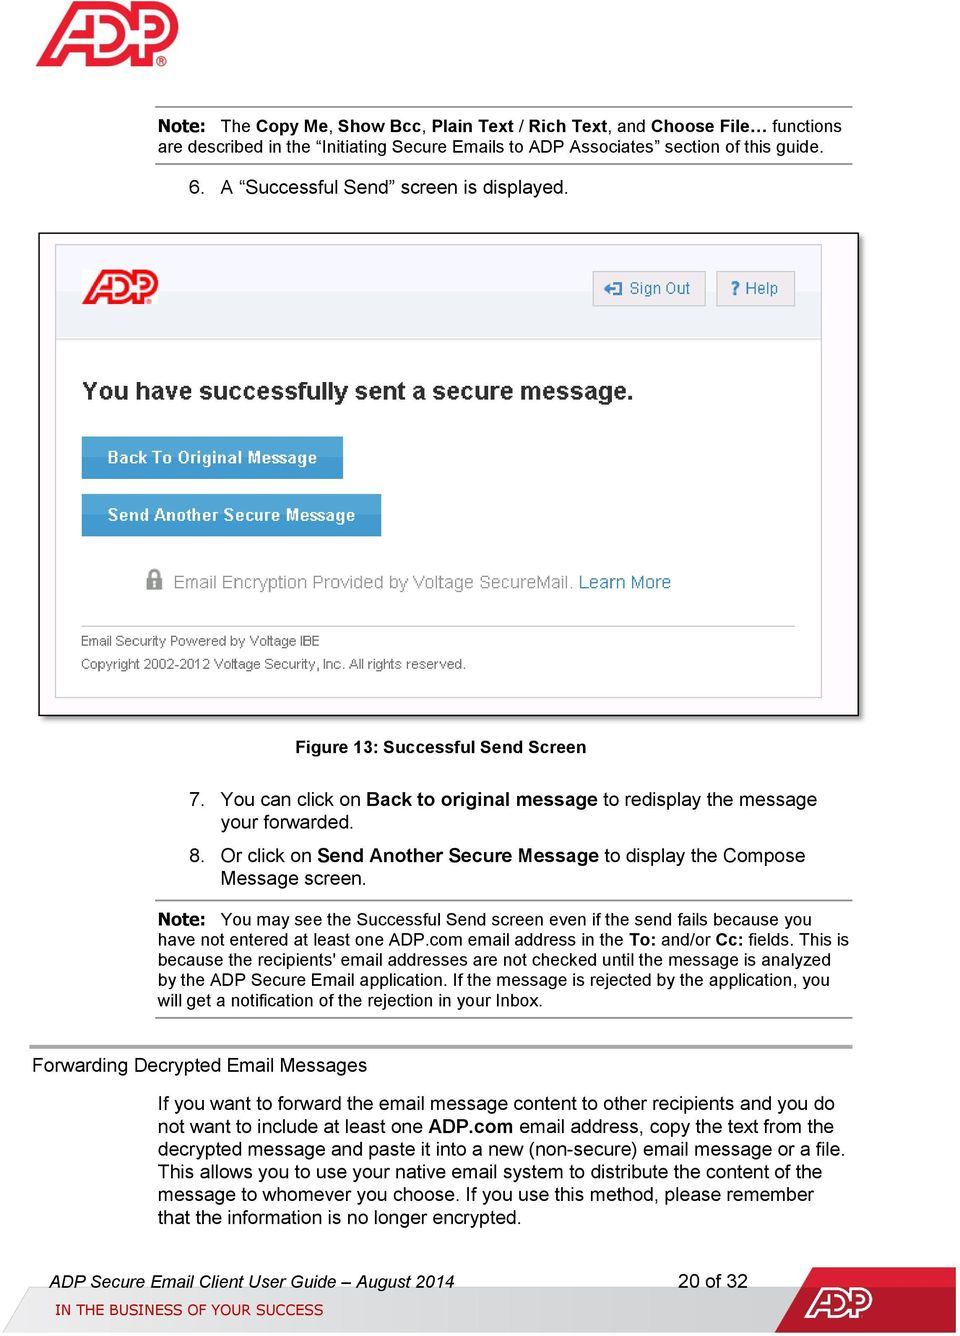 Or click on Send Another Secure Message to display the Compose Message screen. Note: You may see the Successful Send screen even if the send fails because you have not entered at least one ADP.